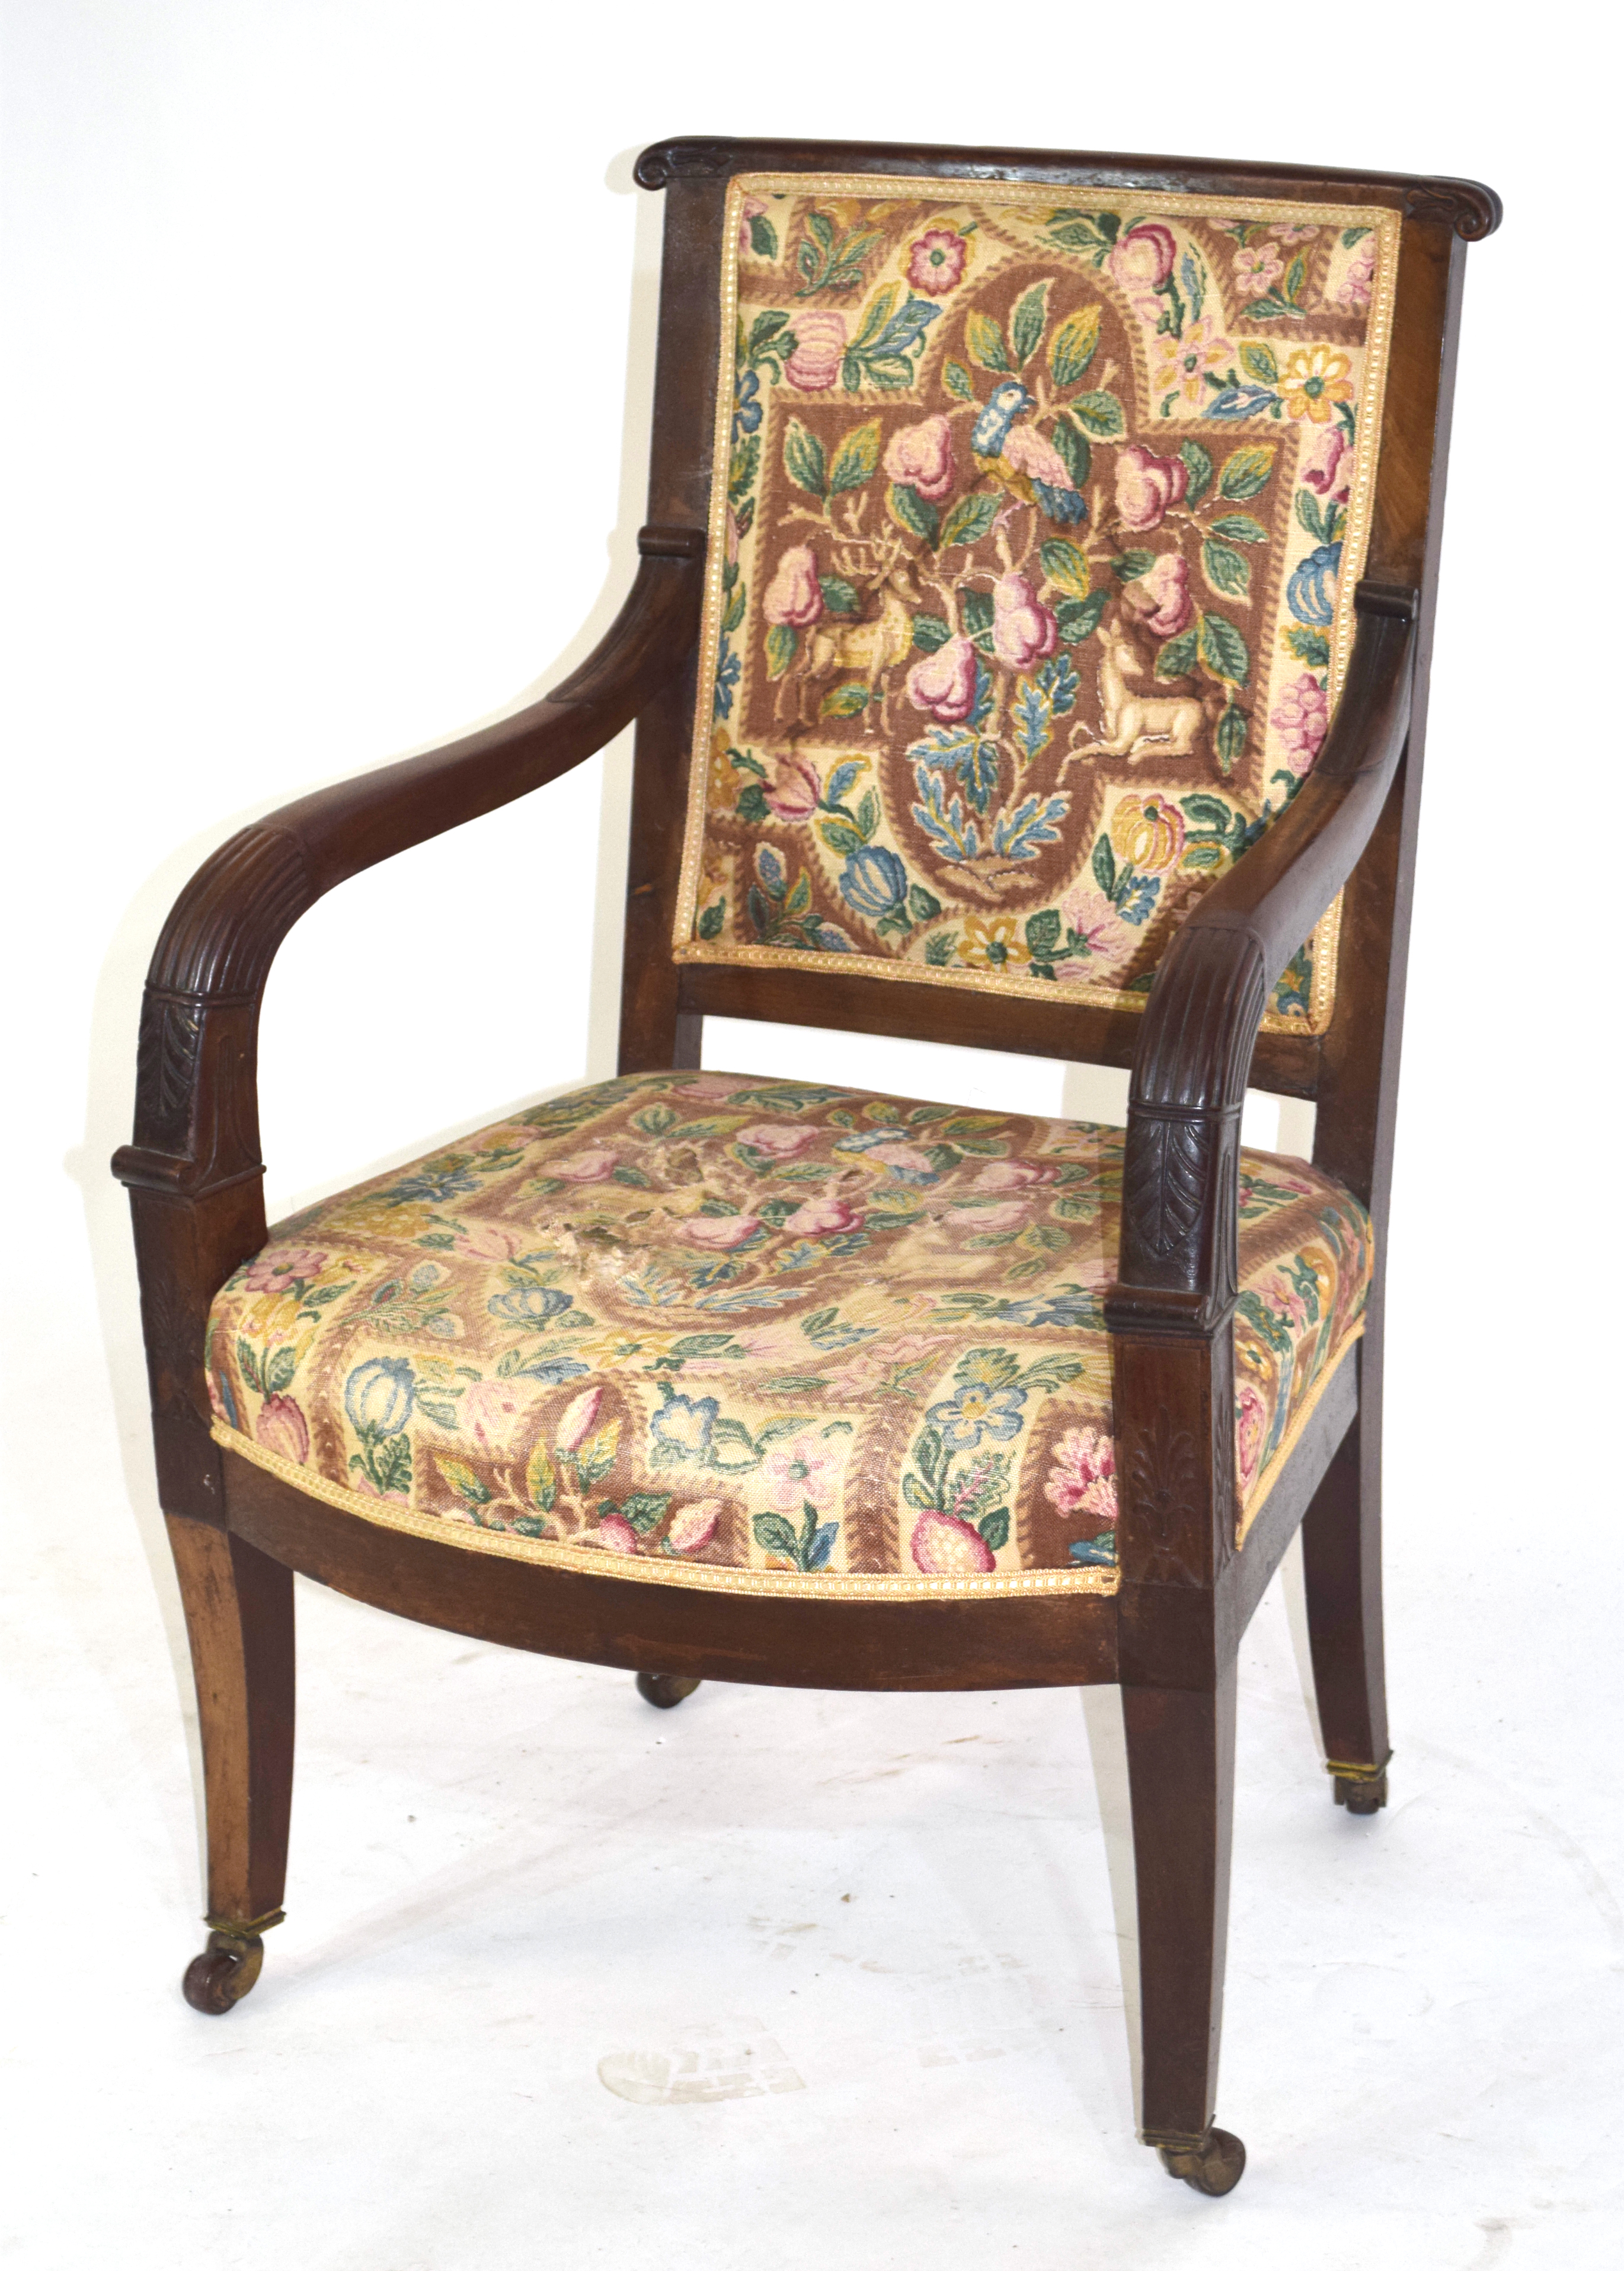 19th century mahogany framed armchair with tapering legs raised on casters, 92cm high Condition: - Image 2 of 4